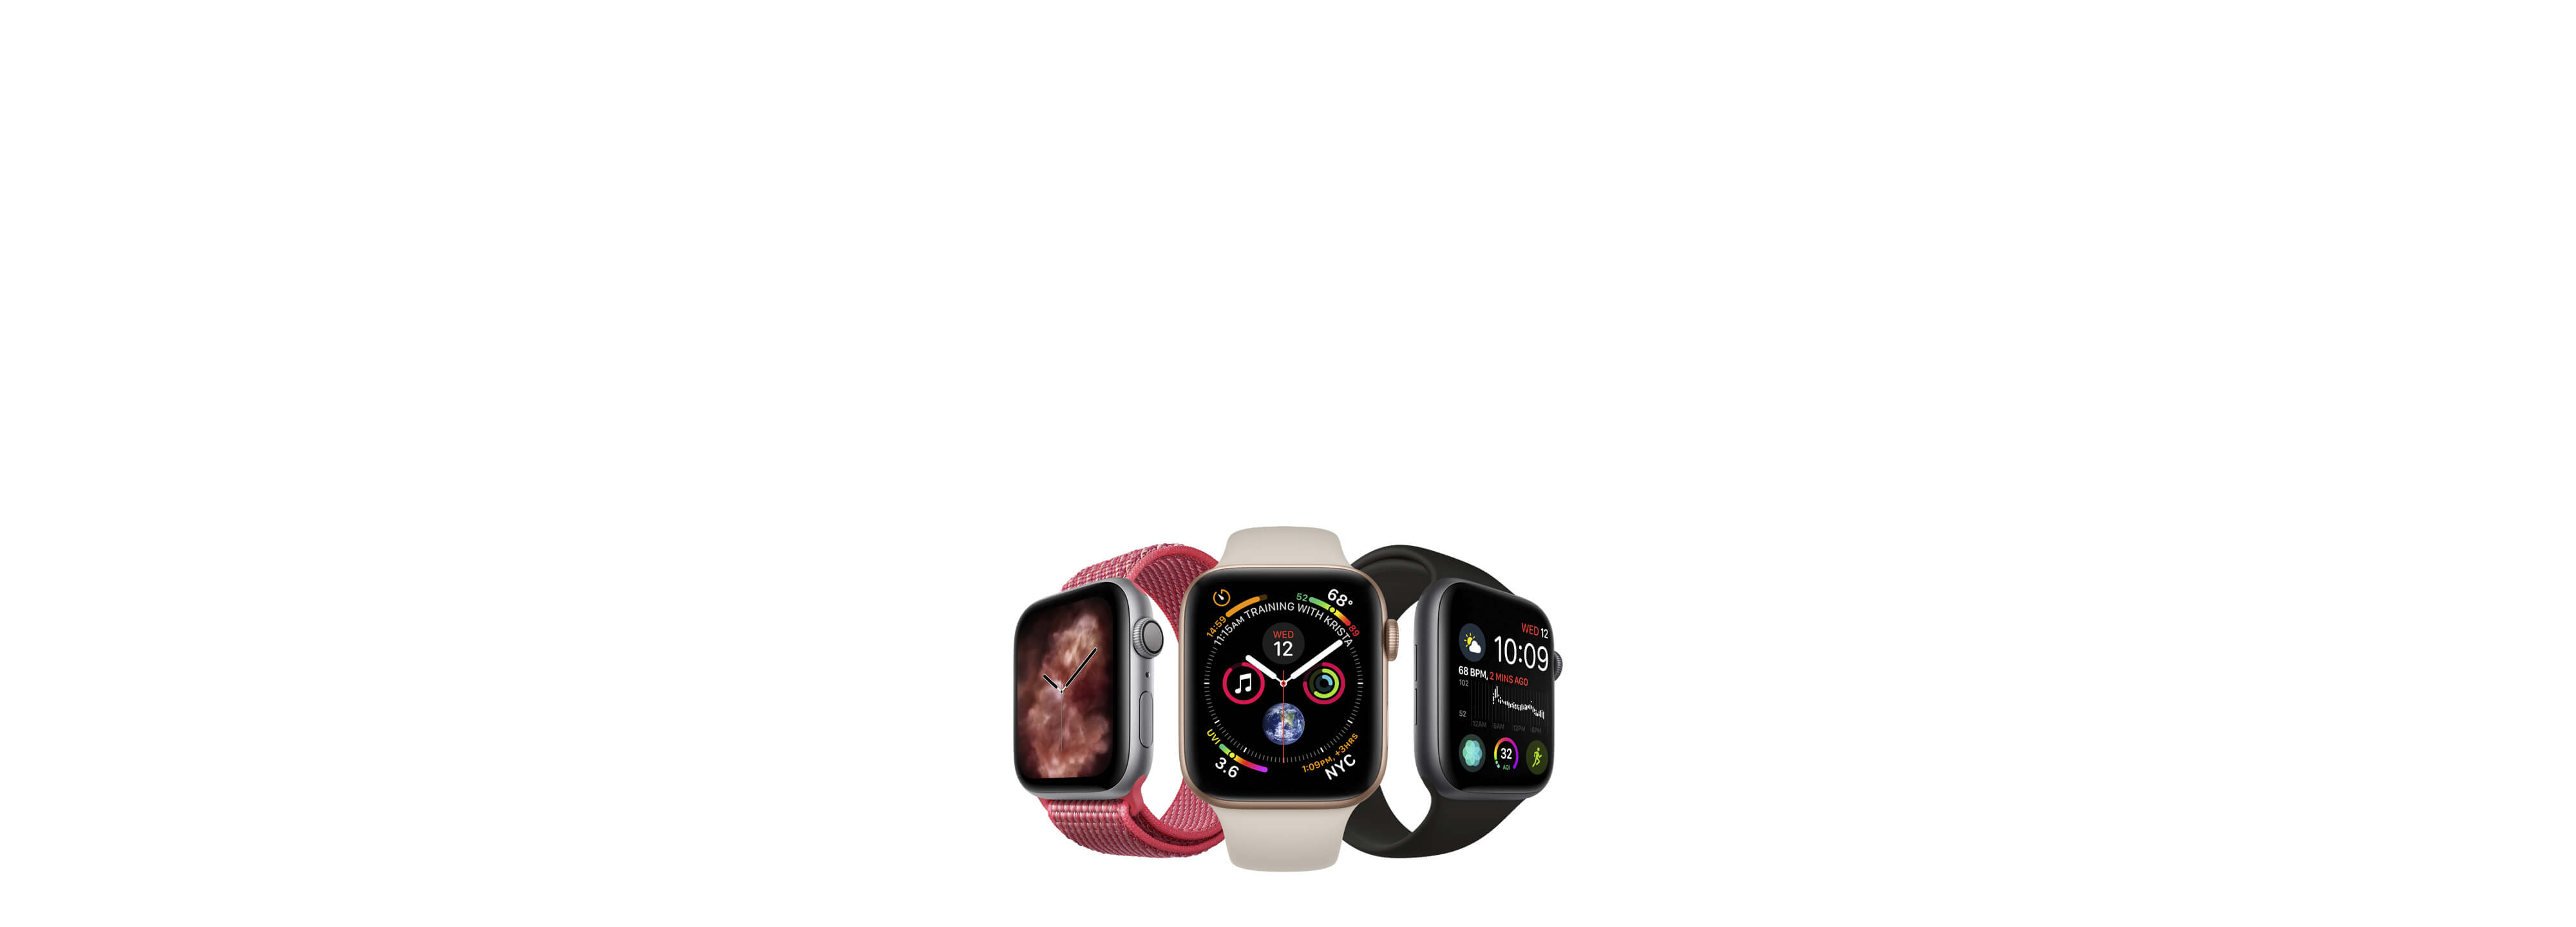 Apple Watch S4 main